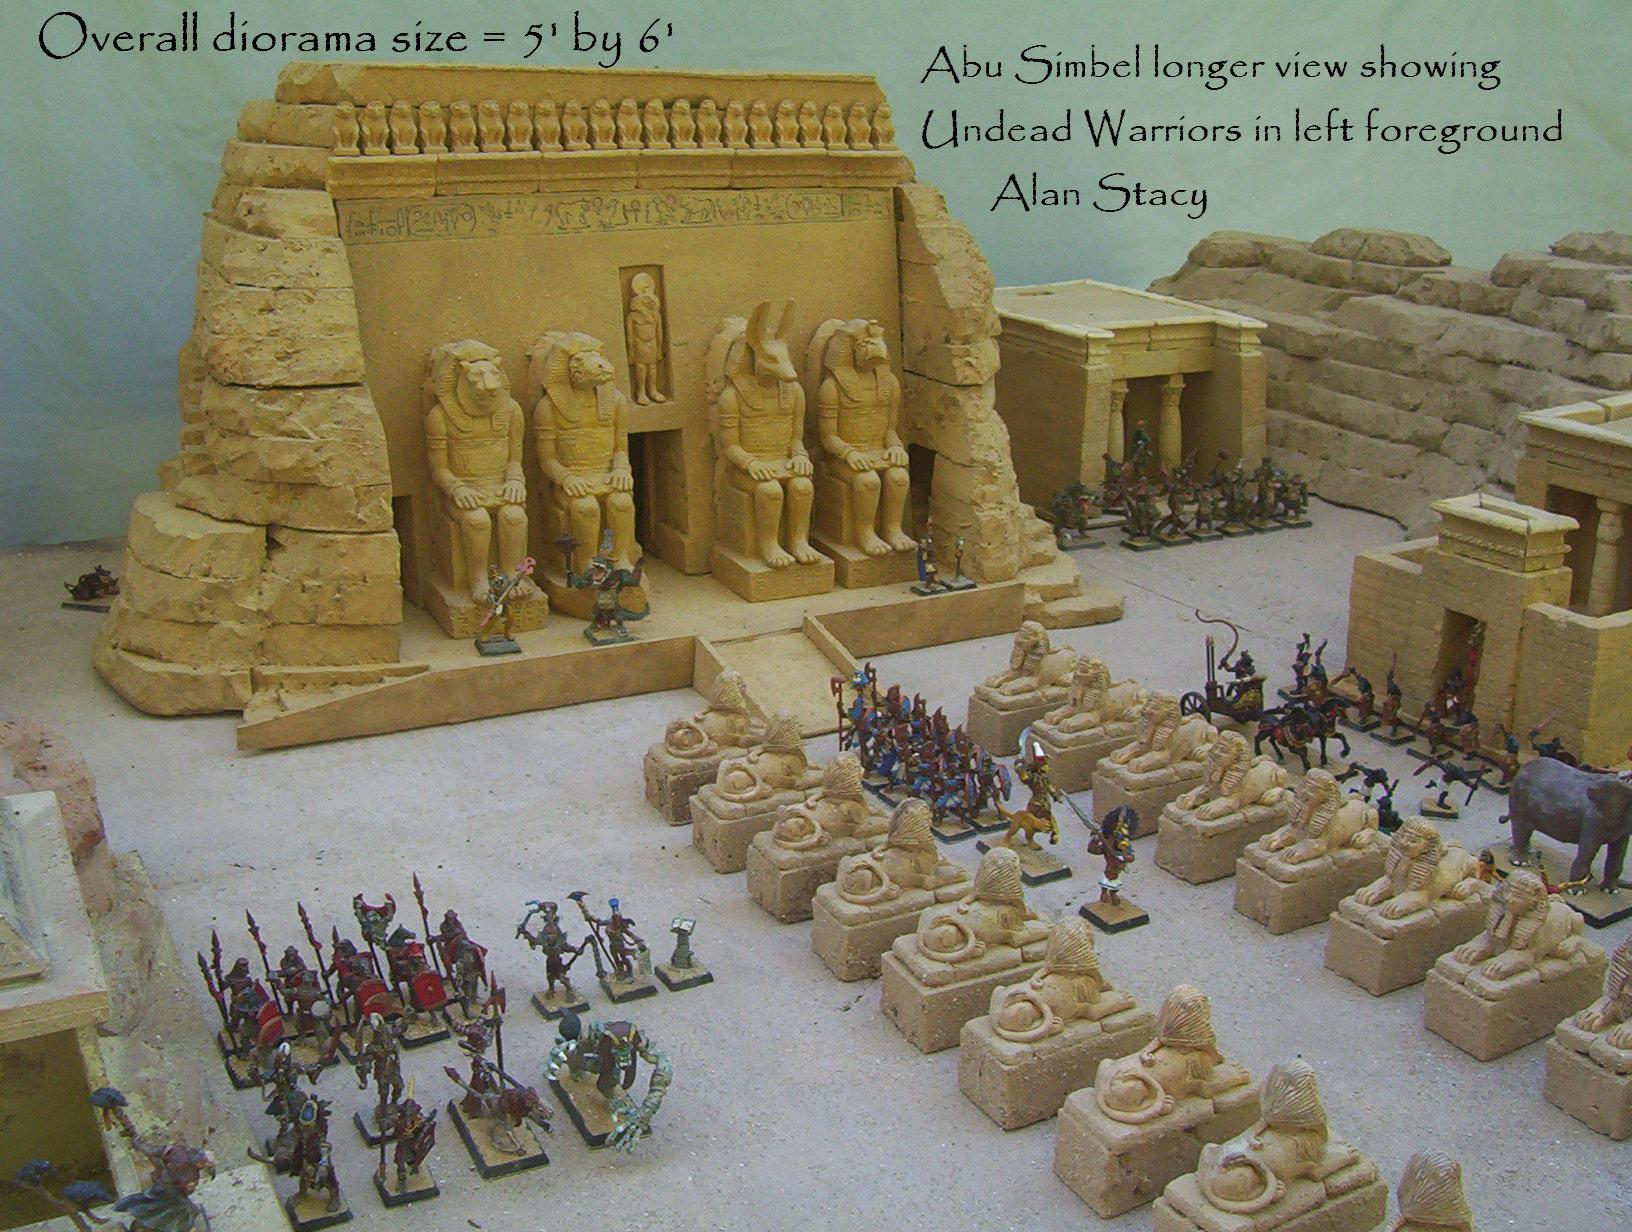 Abu Simbel RPG miniature by Beishung